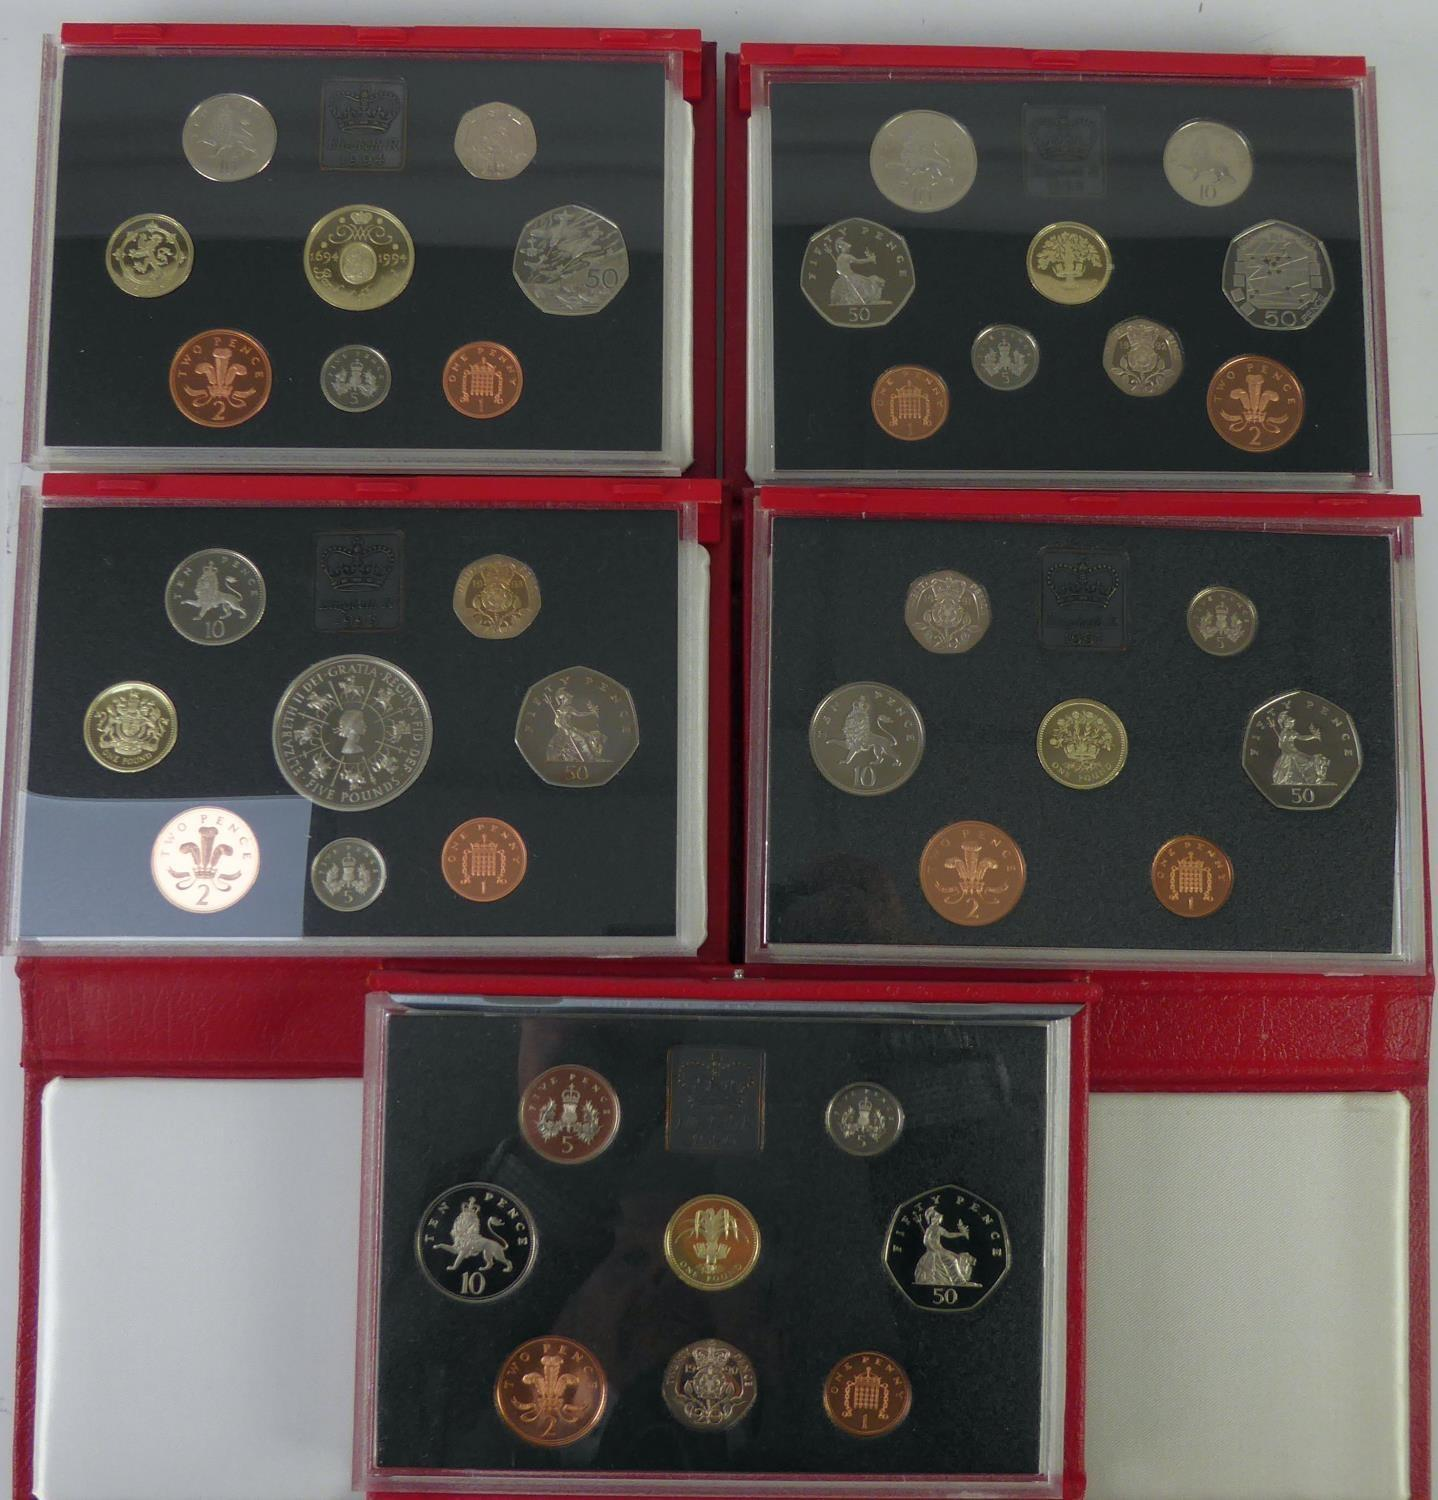 Lot 67 - ROYAL MINT ISSUED COMMEMORATIVE COIN SETS 1990-1999, in original boxes unused (6)